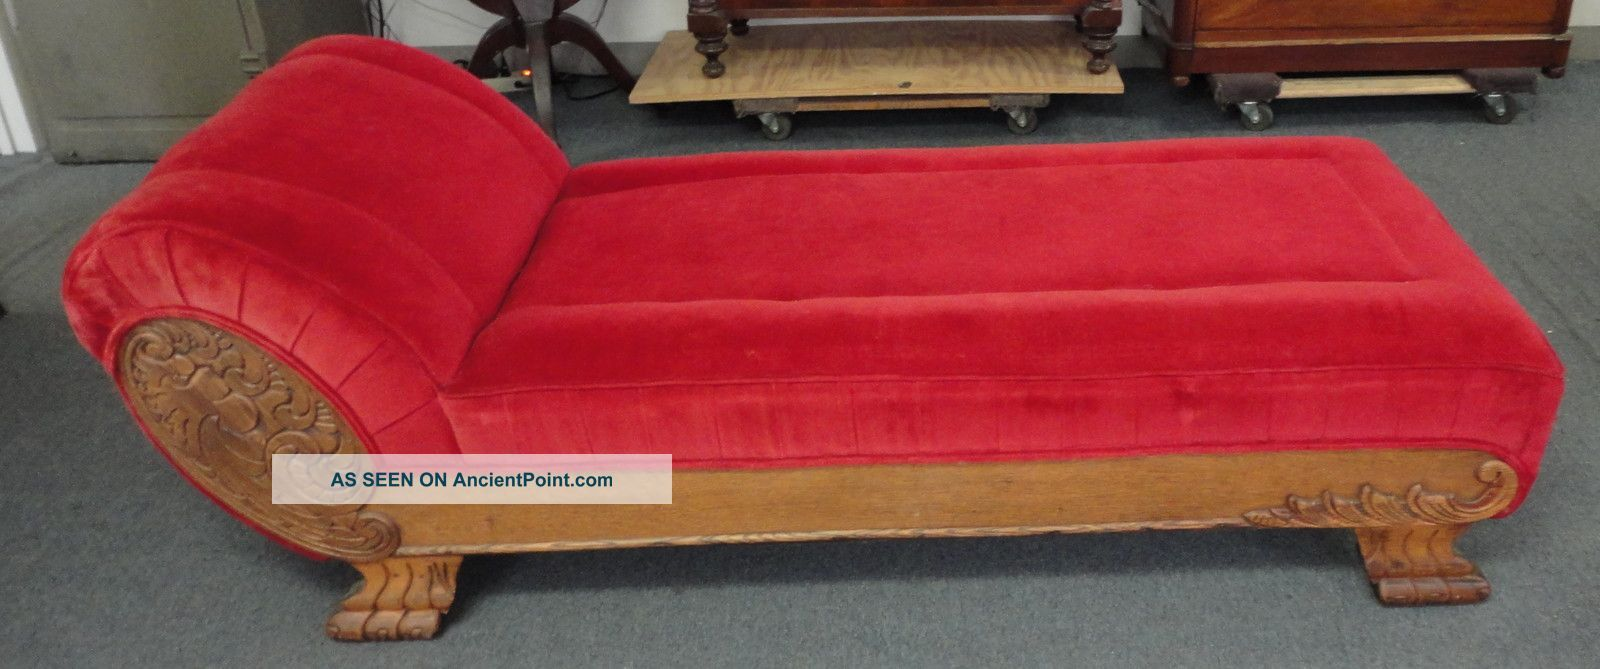 Antique Early 1900u0027s Fainting Couch | Fainting Couches | Pinterest |  Fainting Couch, Victorian Parlor And Apartments